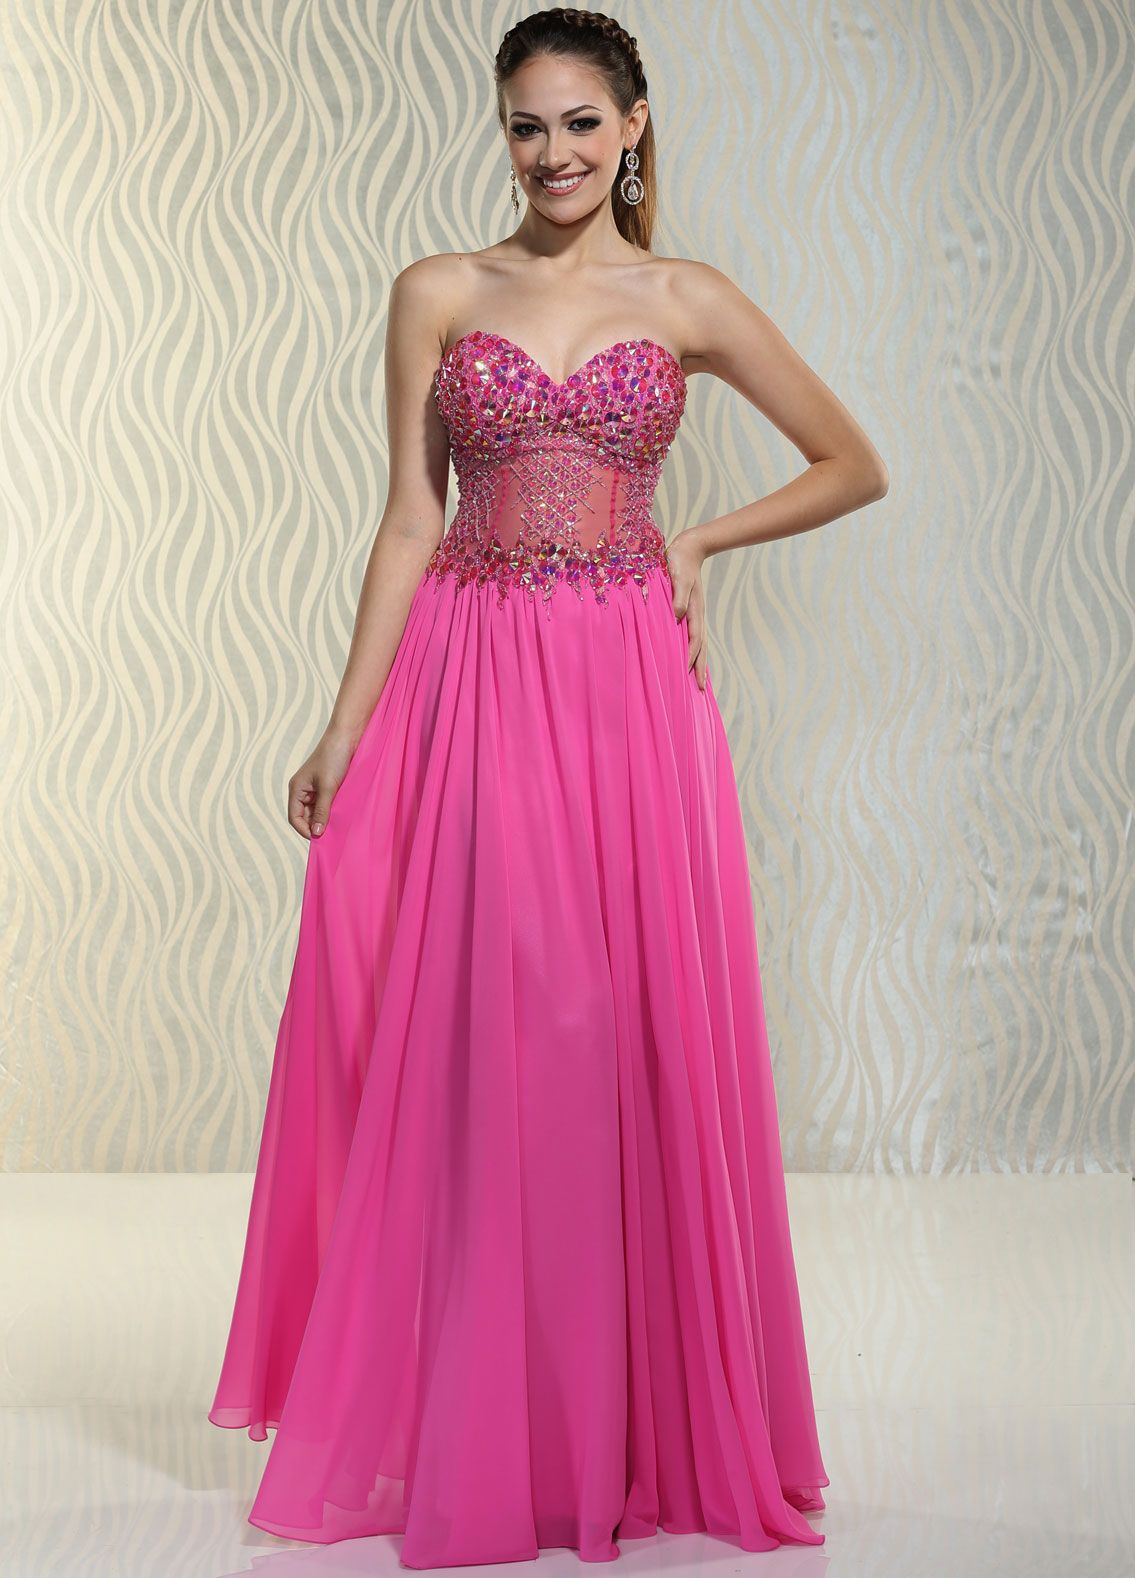 Prom Gowns by Xcite Prom | PROM | Pinterest | Prom, Gowns and Dress ...